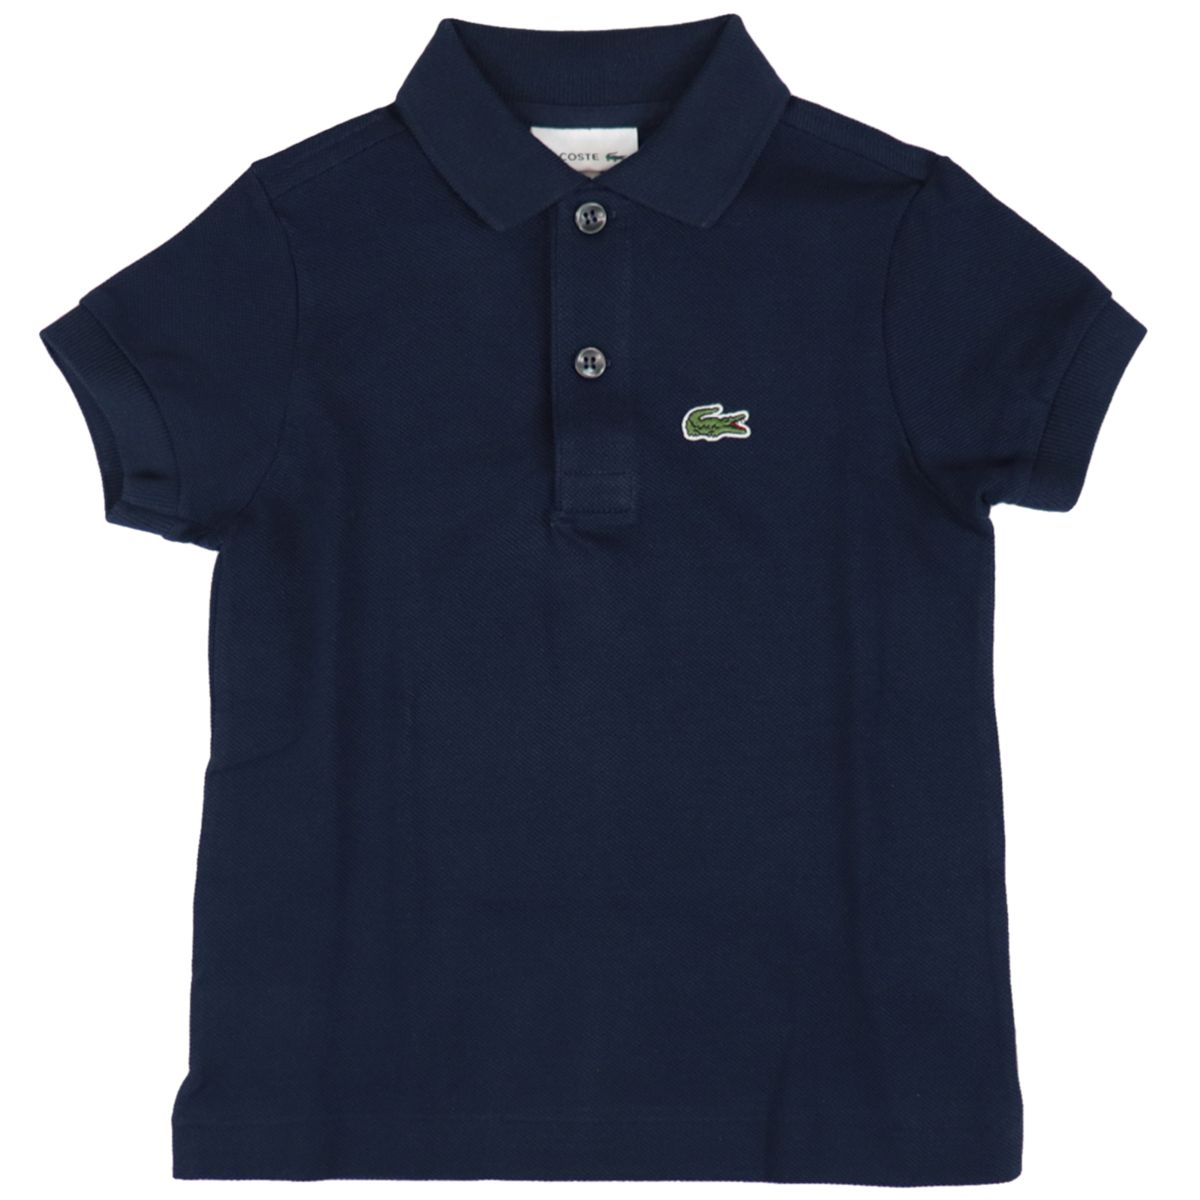 Cotton piqué polo shirt with 2 buttons with logo Blue Lacoste